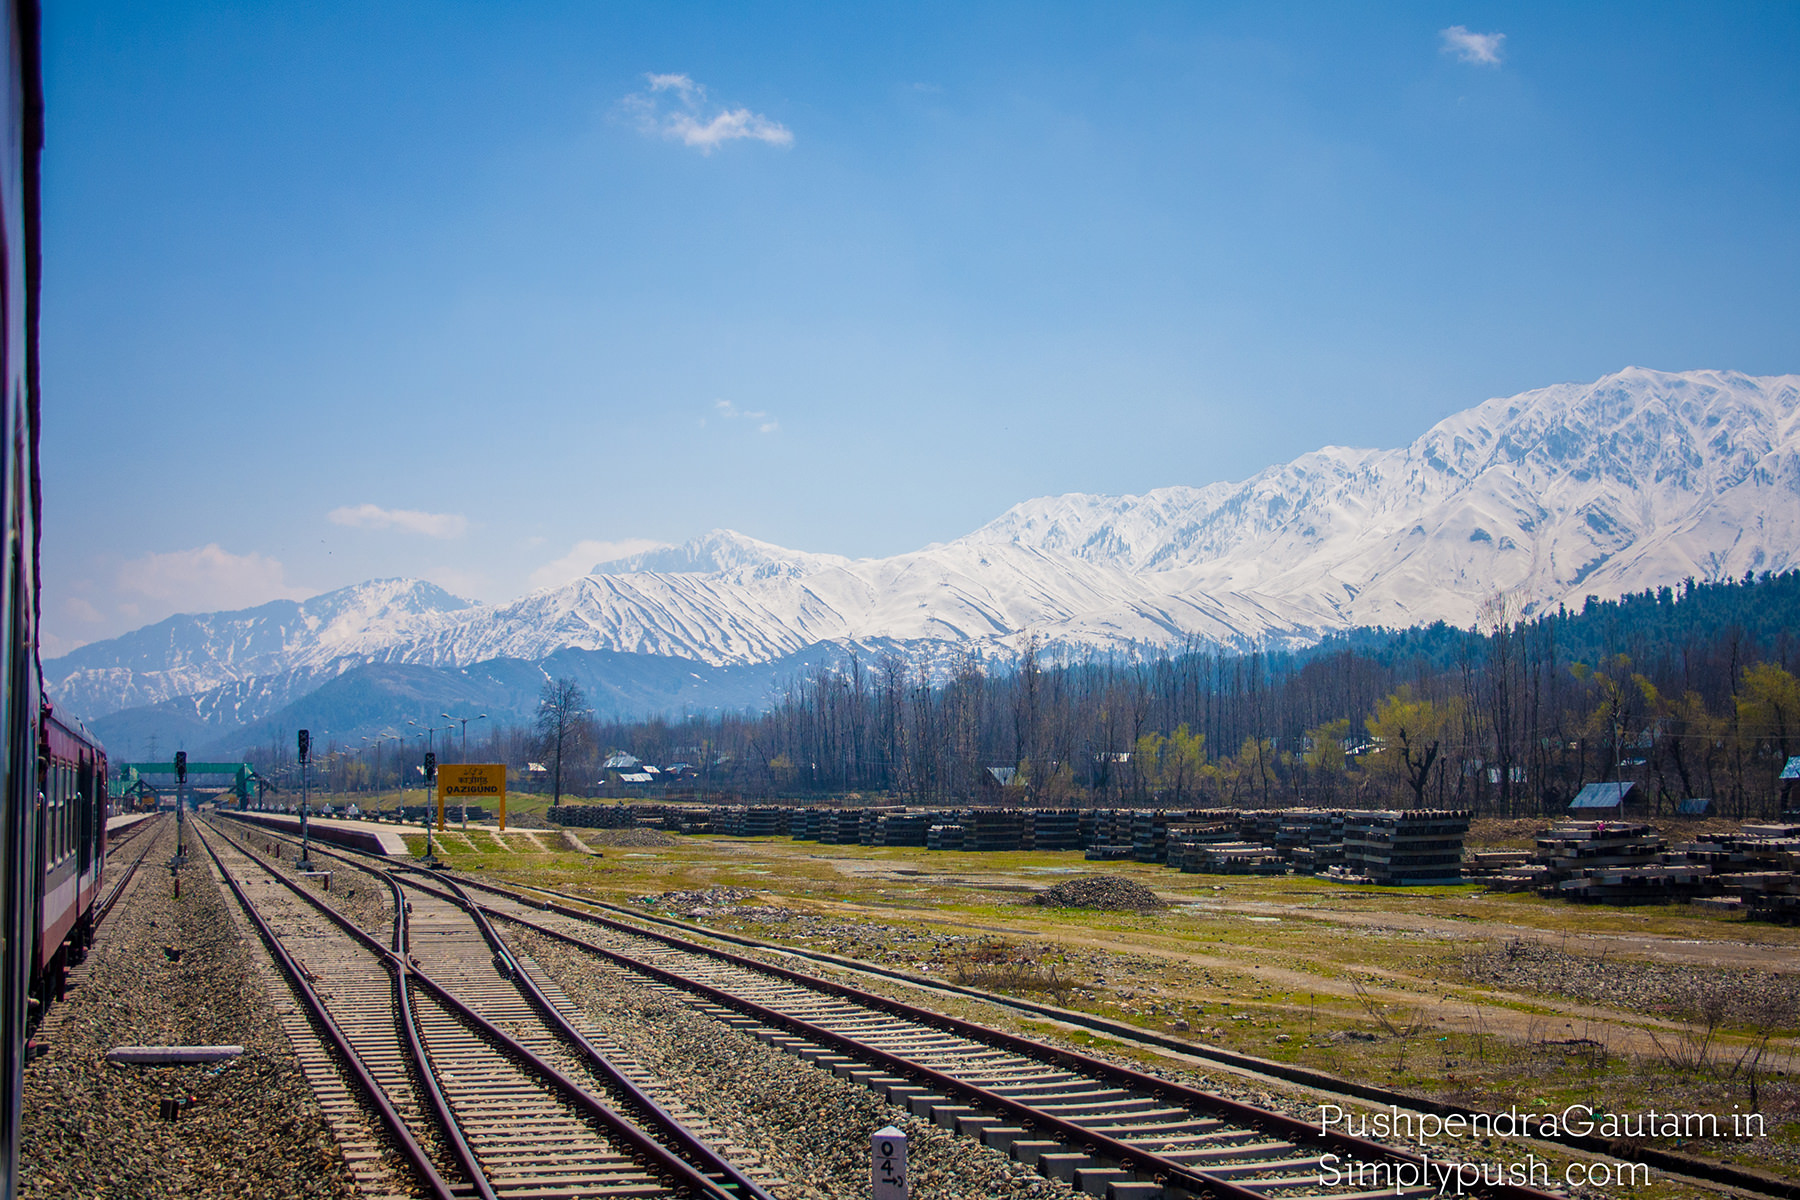 Srinagr-Banihal-railway-route-via-pir-panjal-railway-tunnel-jammu-kashmir-longest-railway-tunne-india